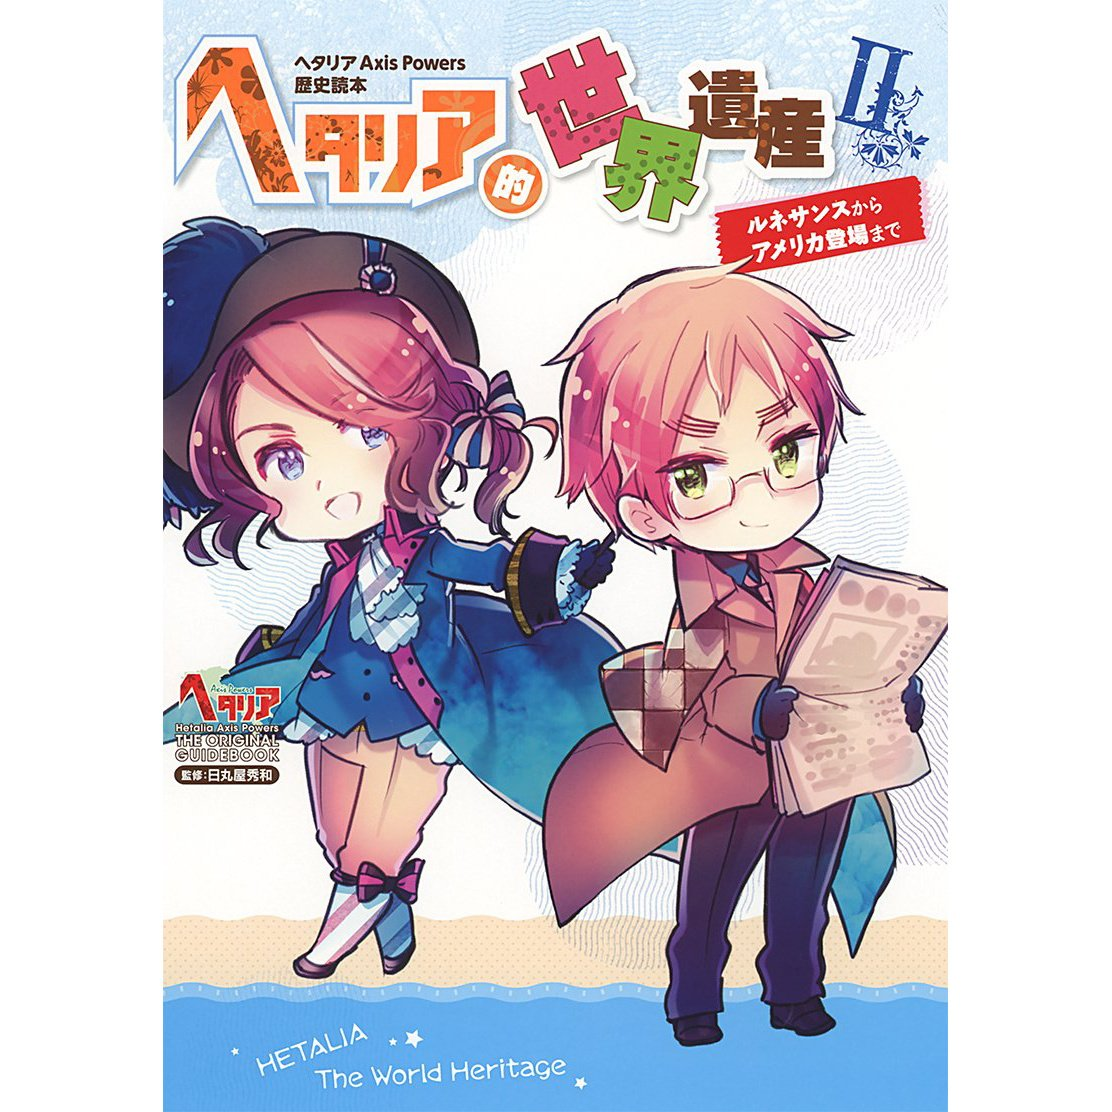 hetalia axis powers history book vol 2 tokyo otaku mode shop